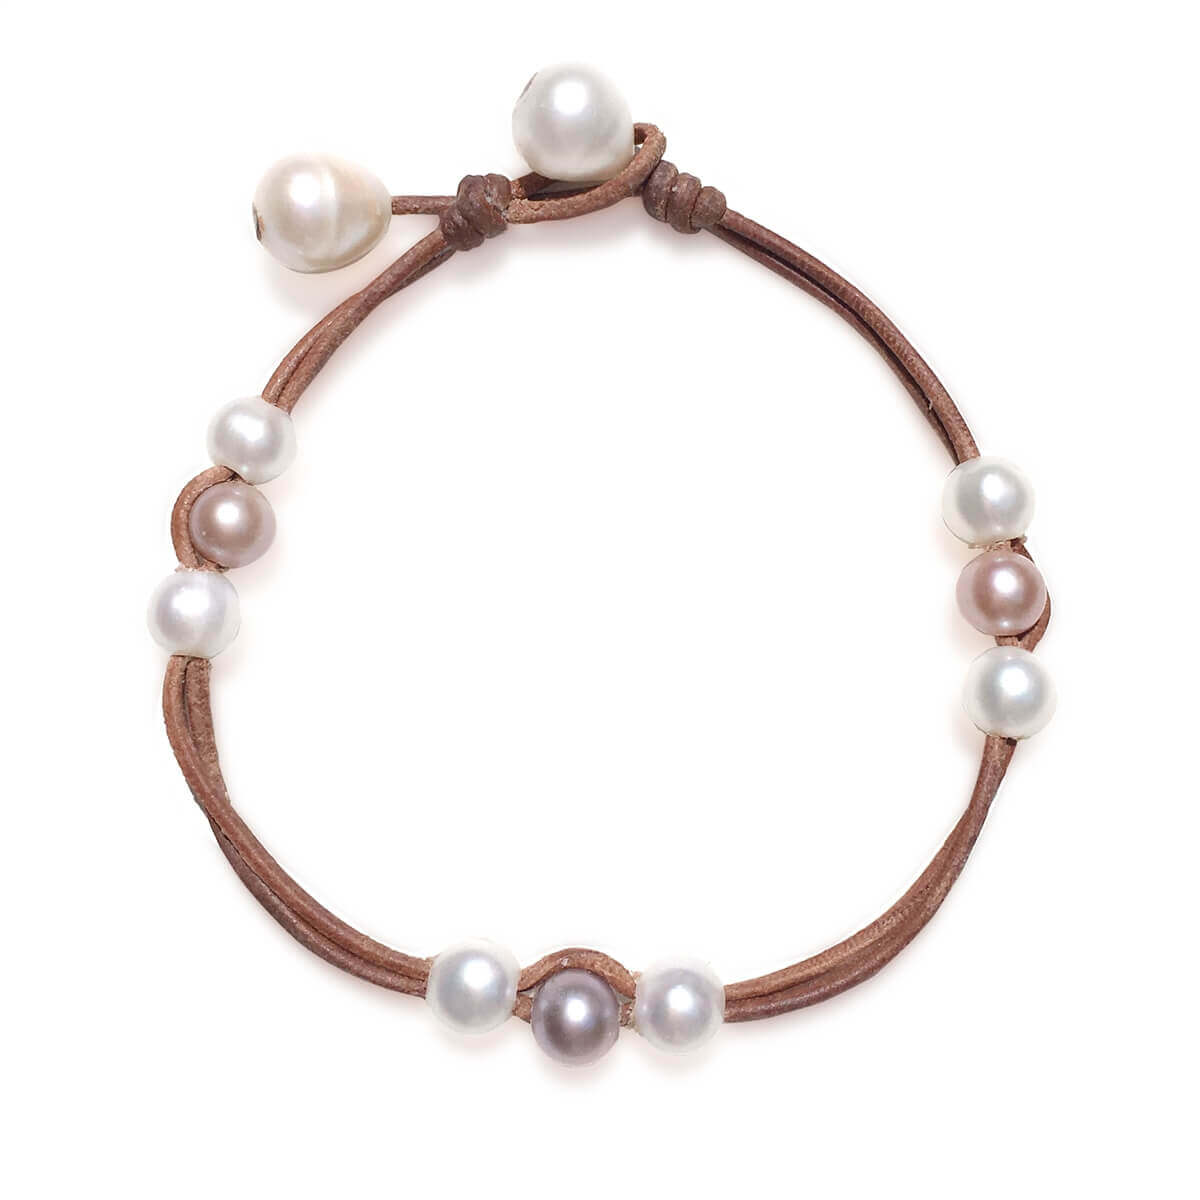 Astonishing Leather and Pearls Anklets by Wendy Mignot to Give the Finishing Touch to Your Outfits